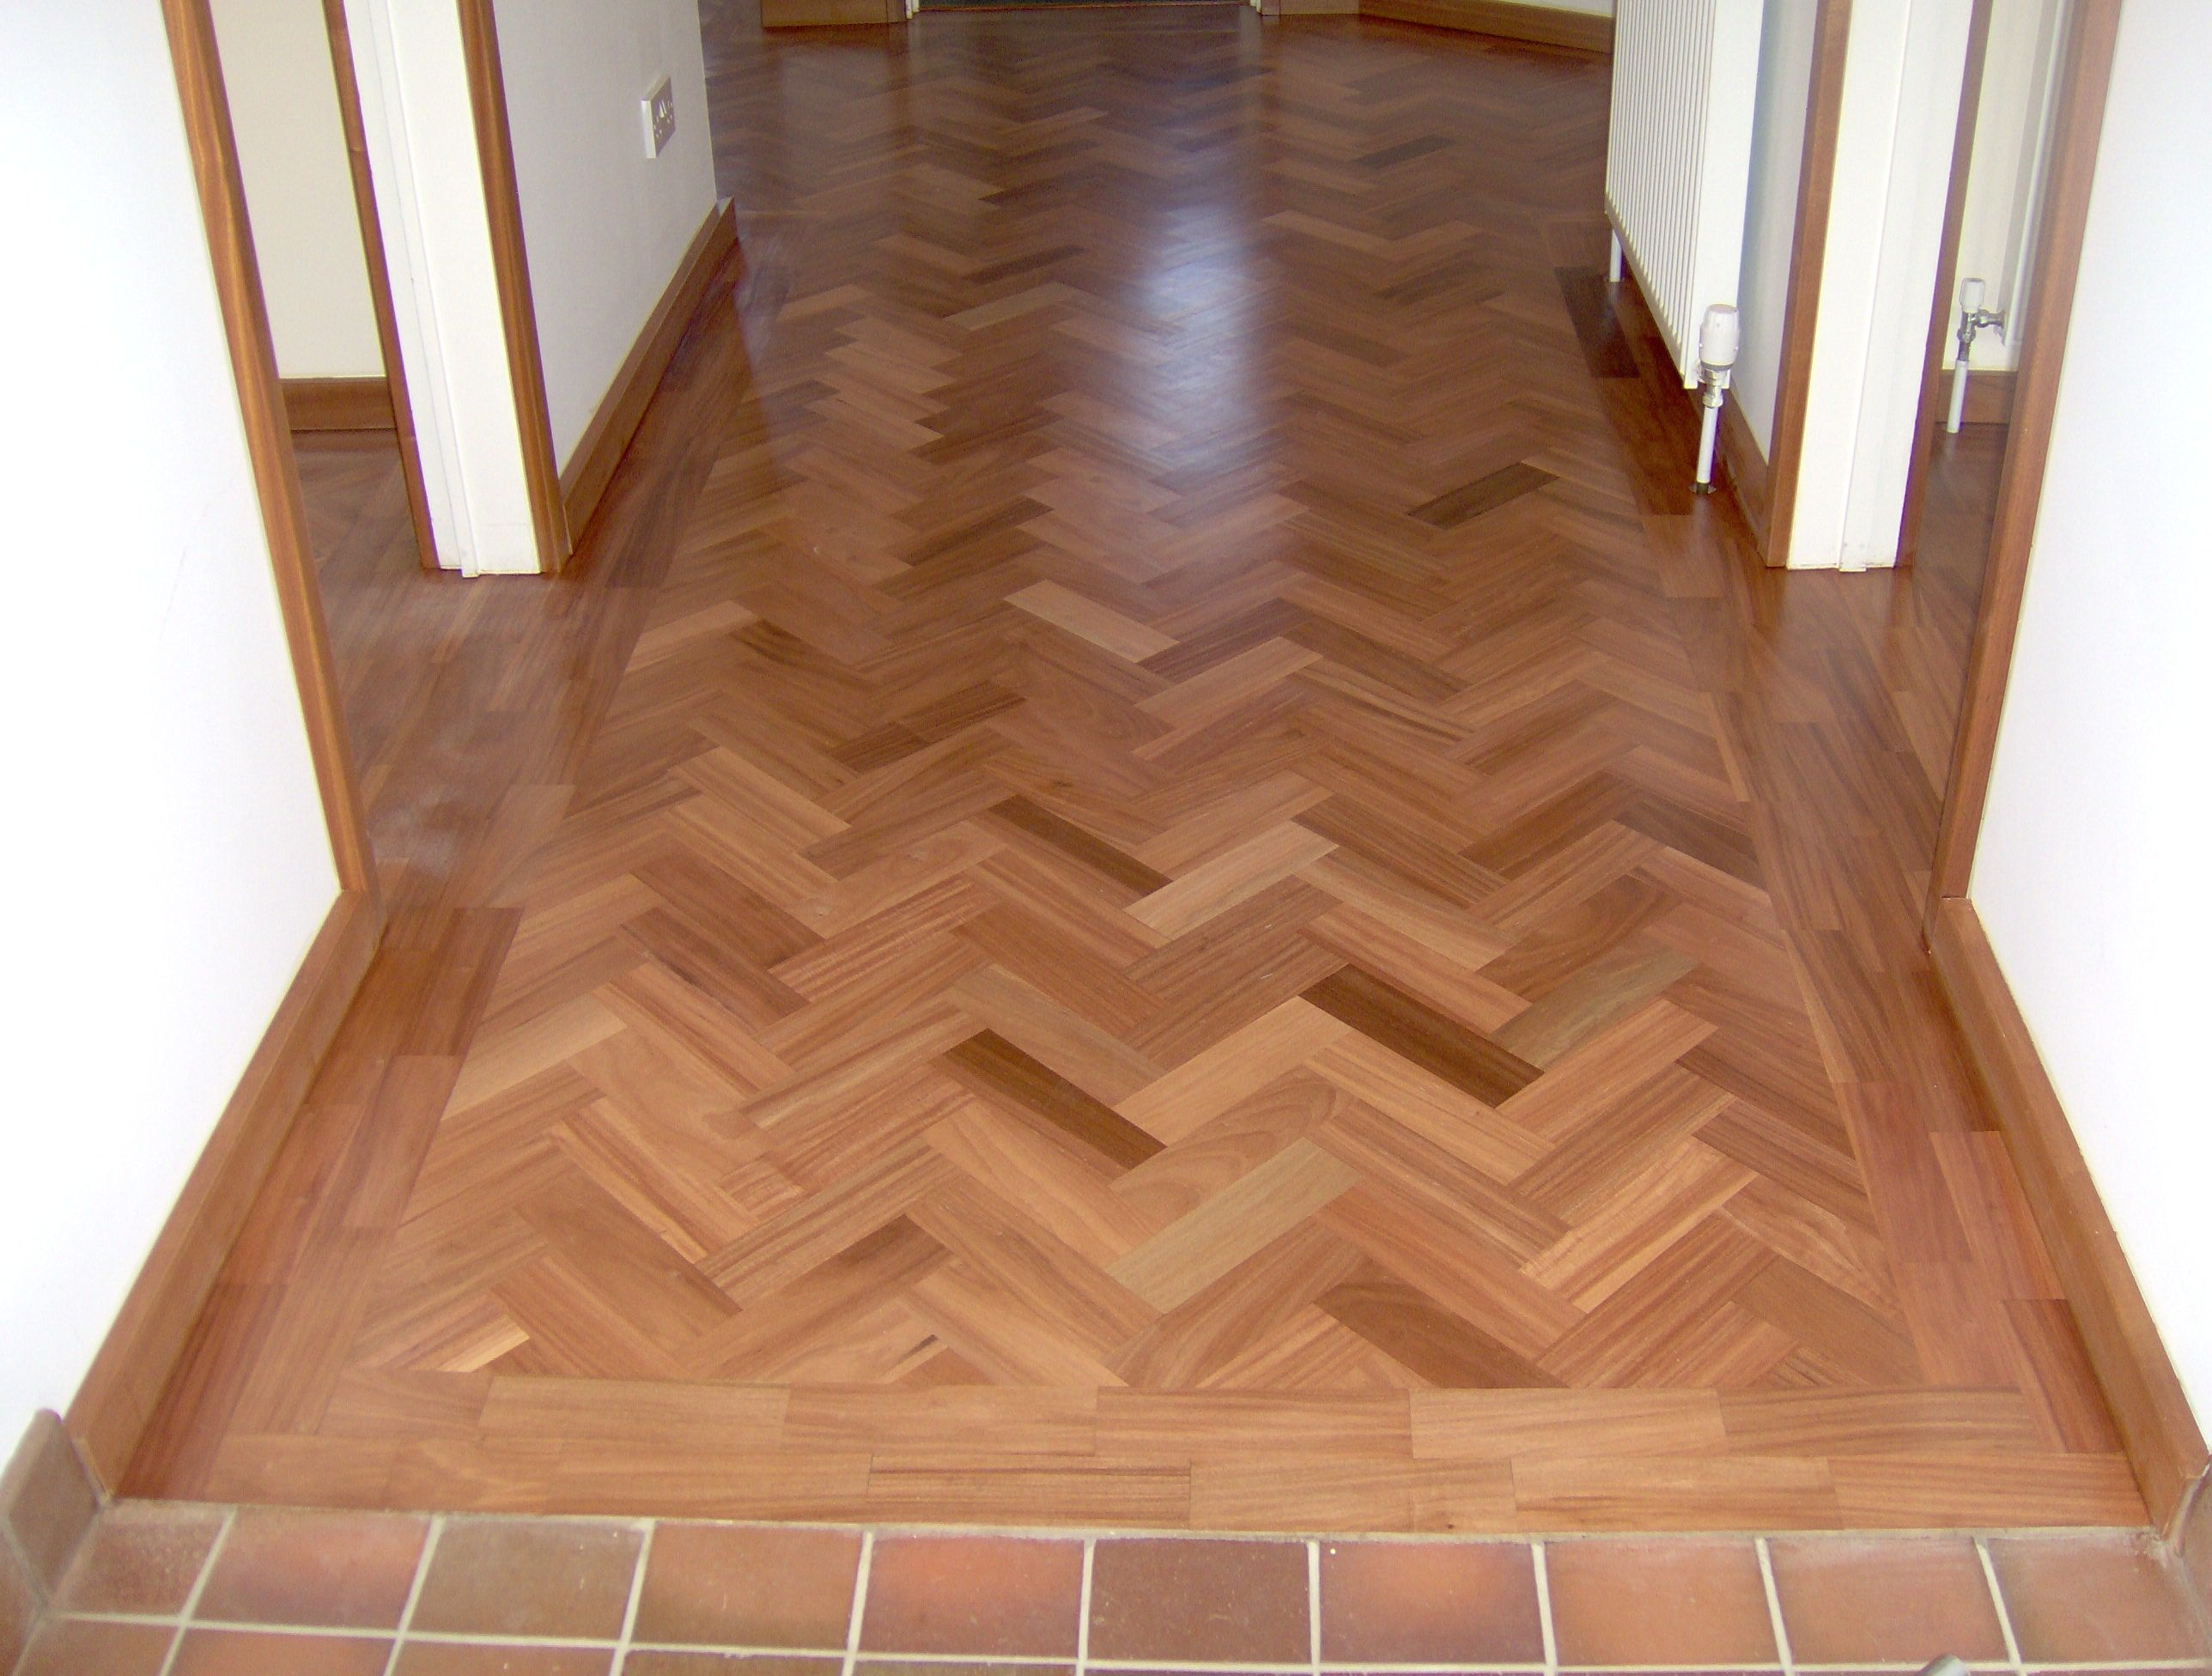 old clean hunker how floor to floors fotolia parquet step parkay xs